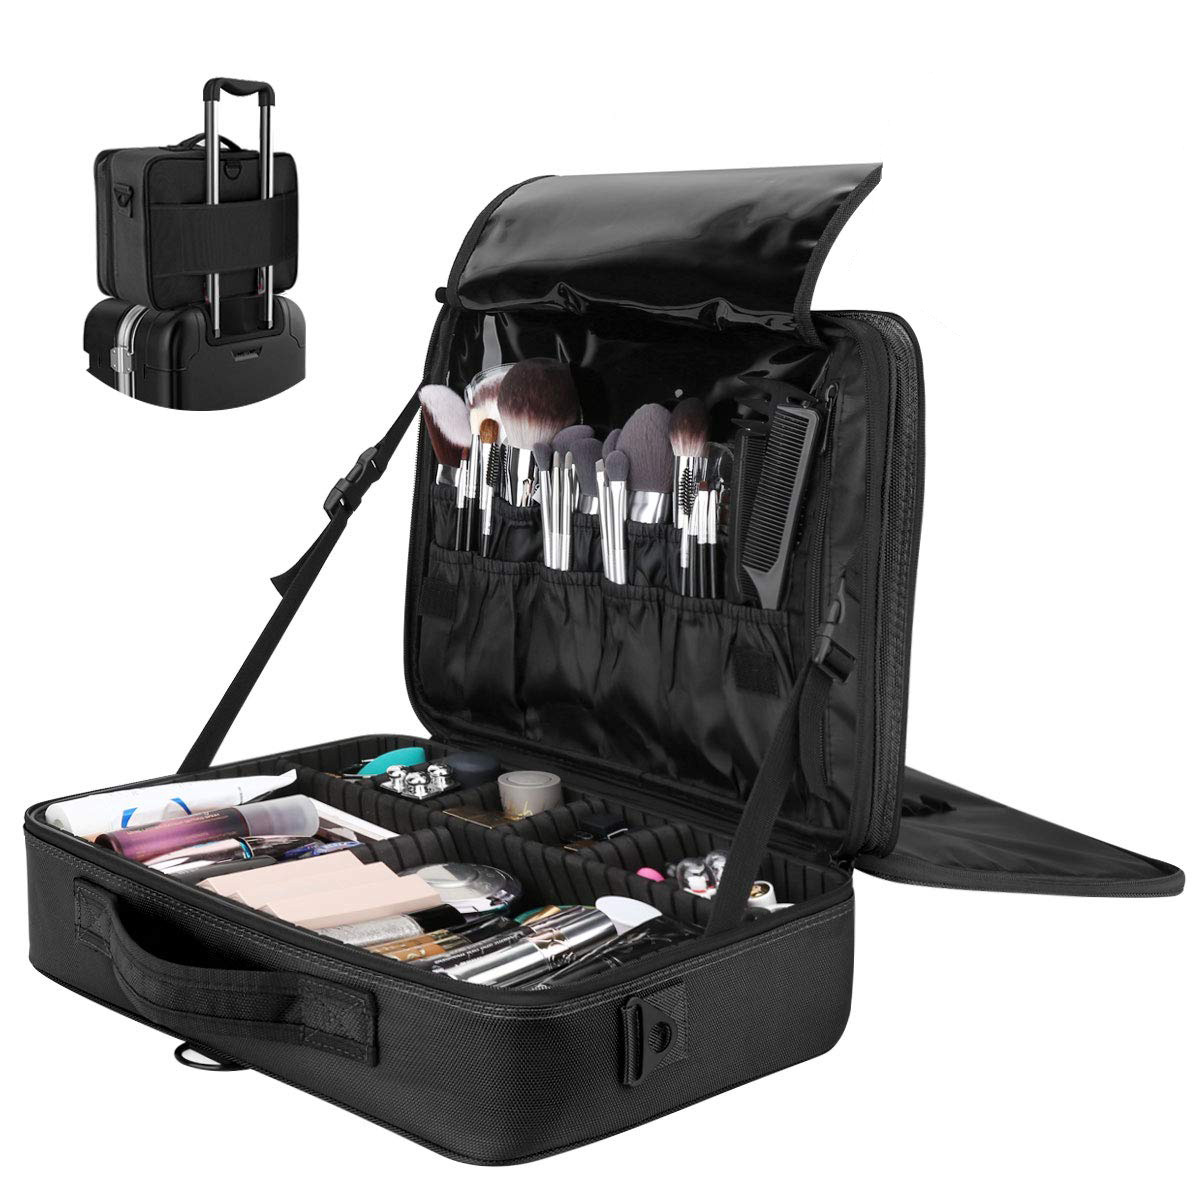 Professional Cosmetic Makeup Carry Case Organizer Bag With Dividers MUBA-L